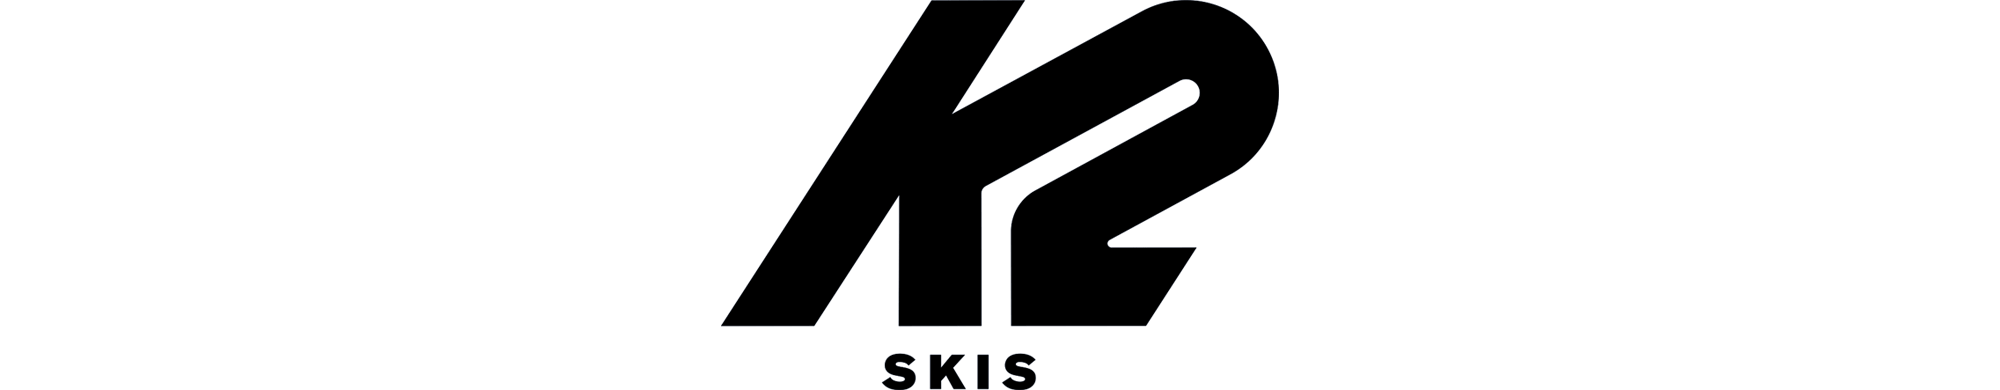 K2-Skis copy.png